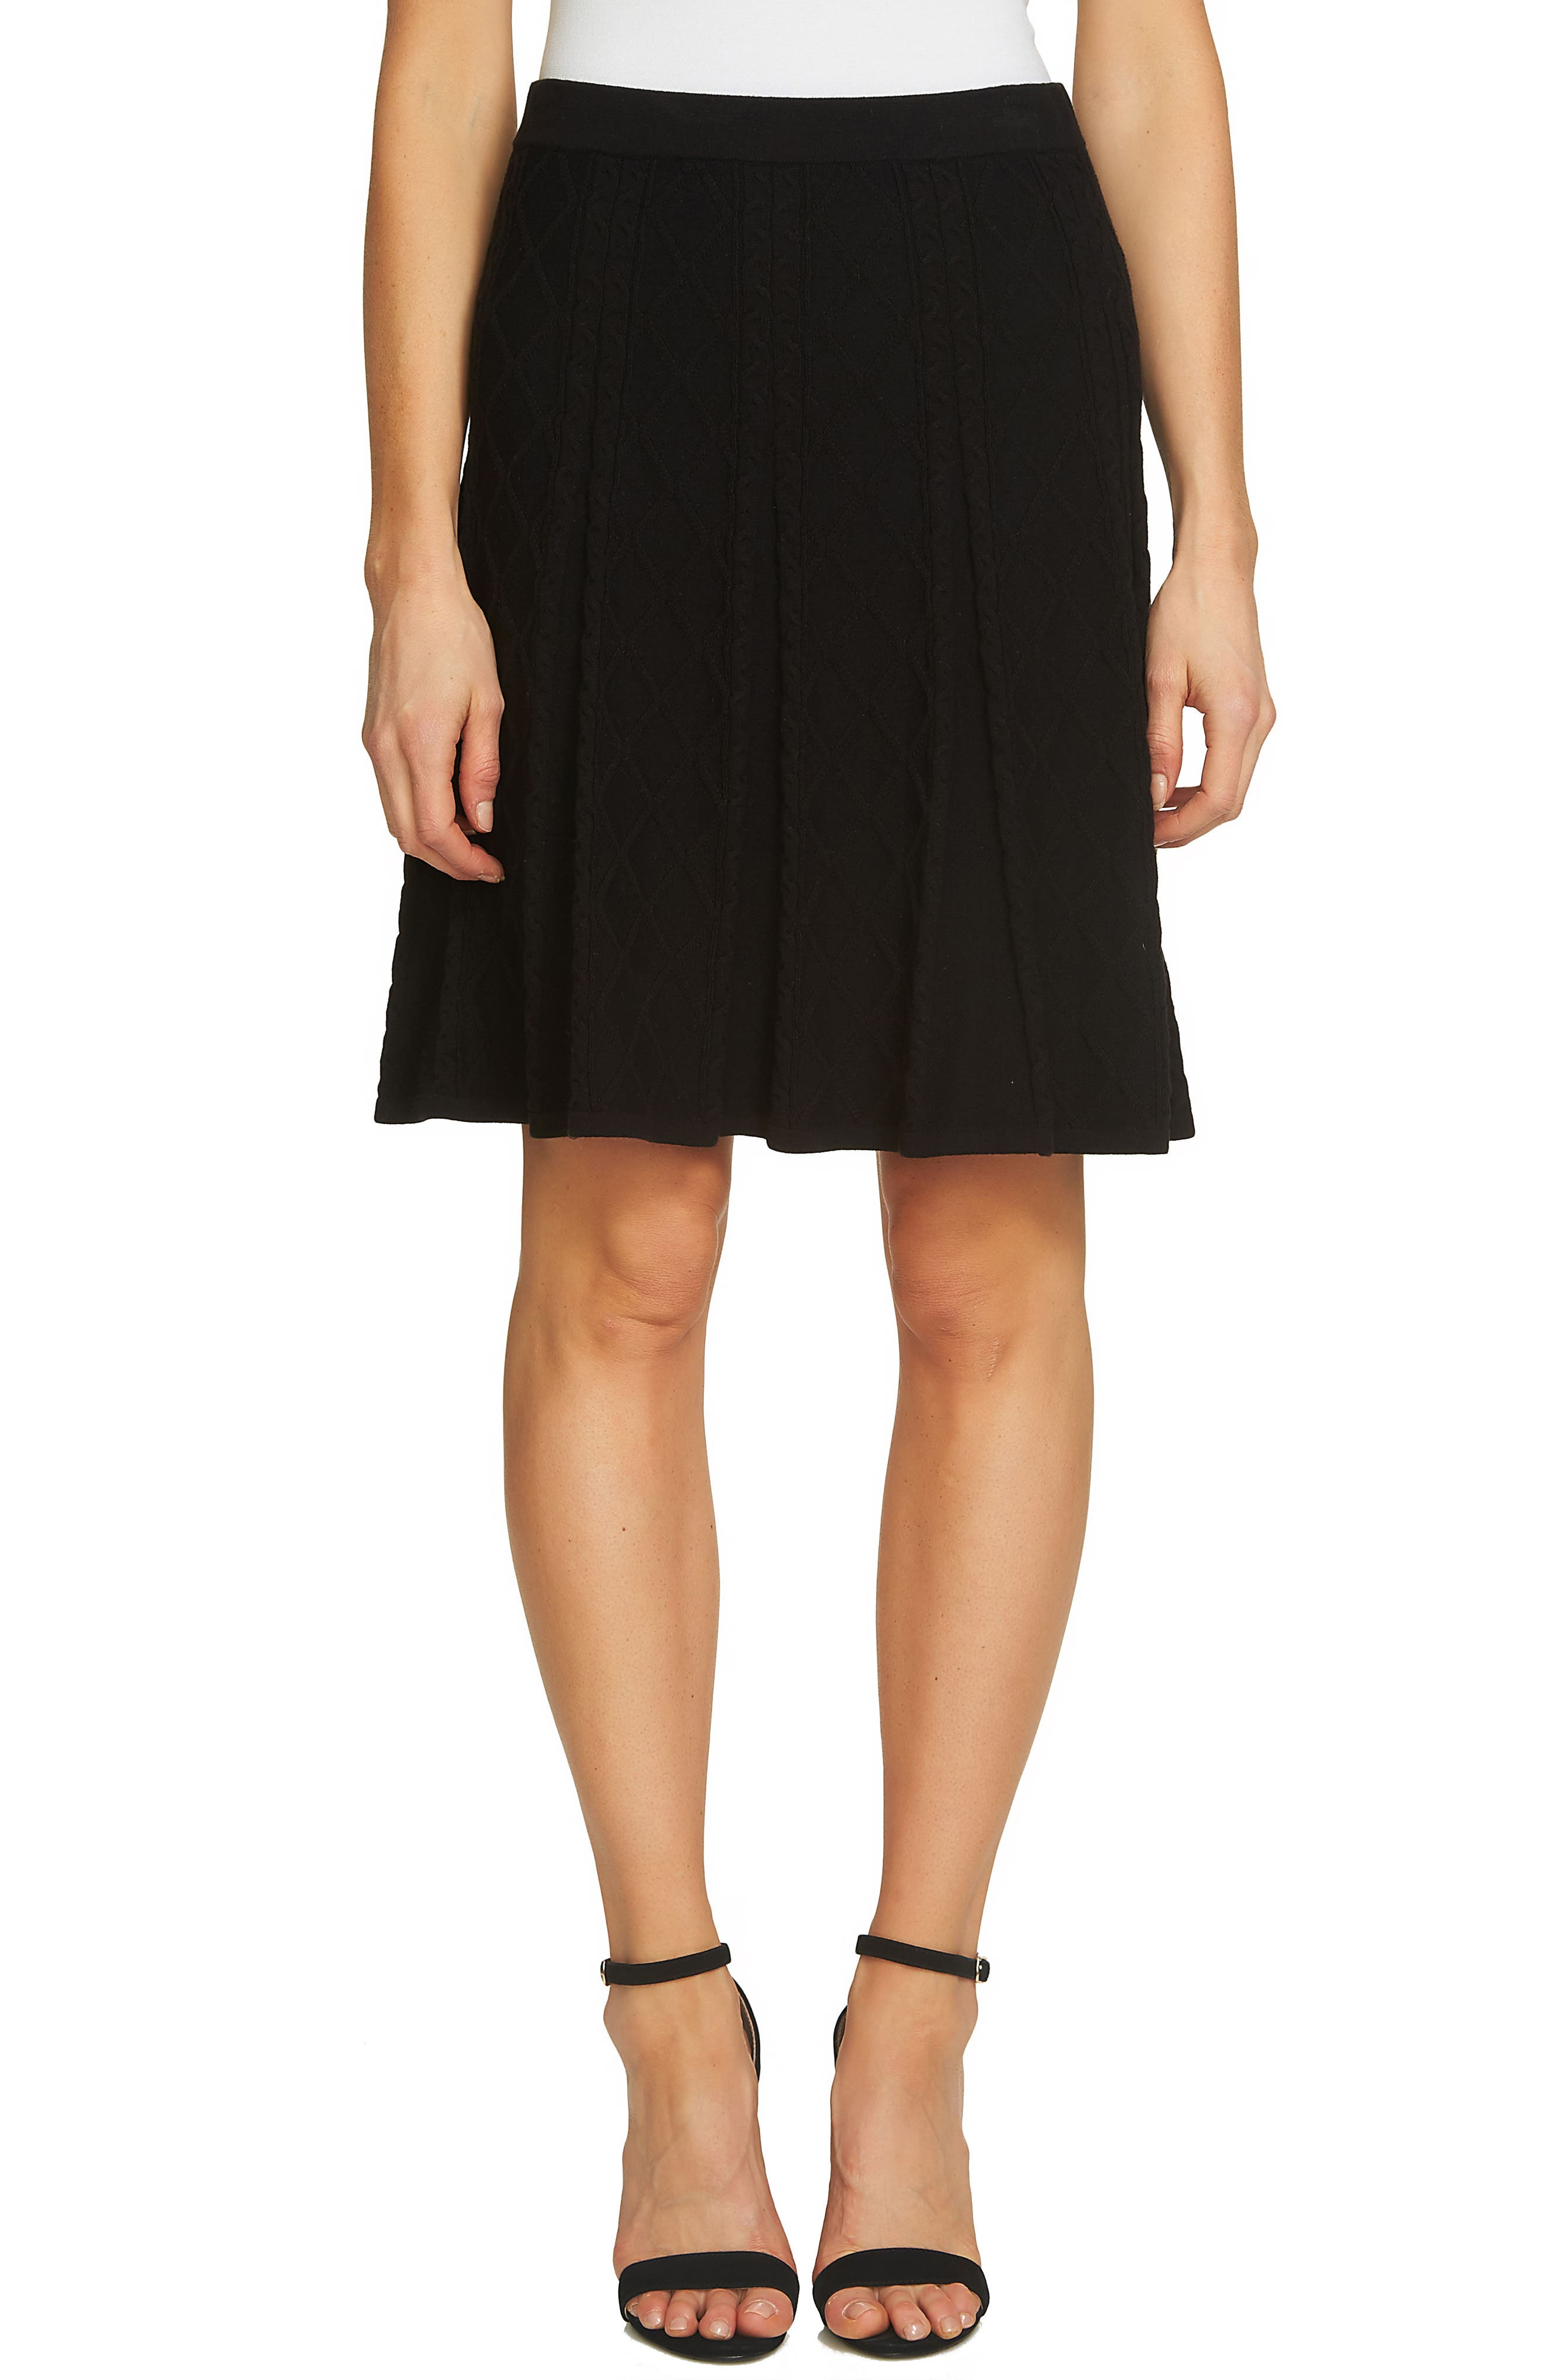 CeCe Jacquard Knit Skirt